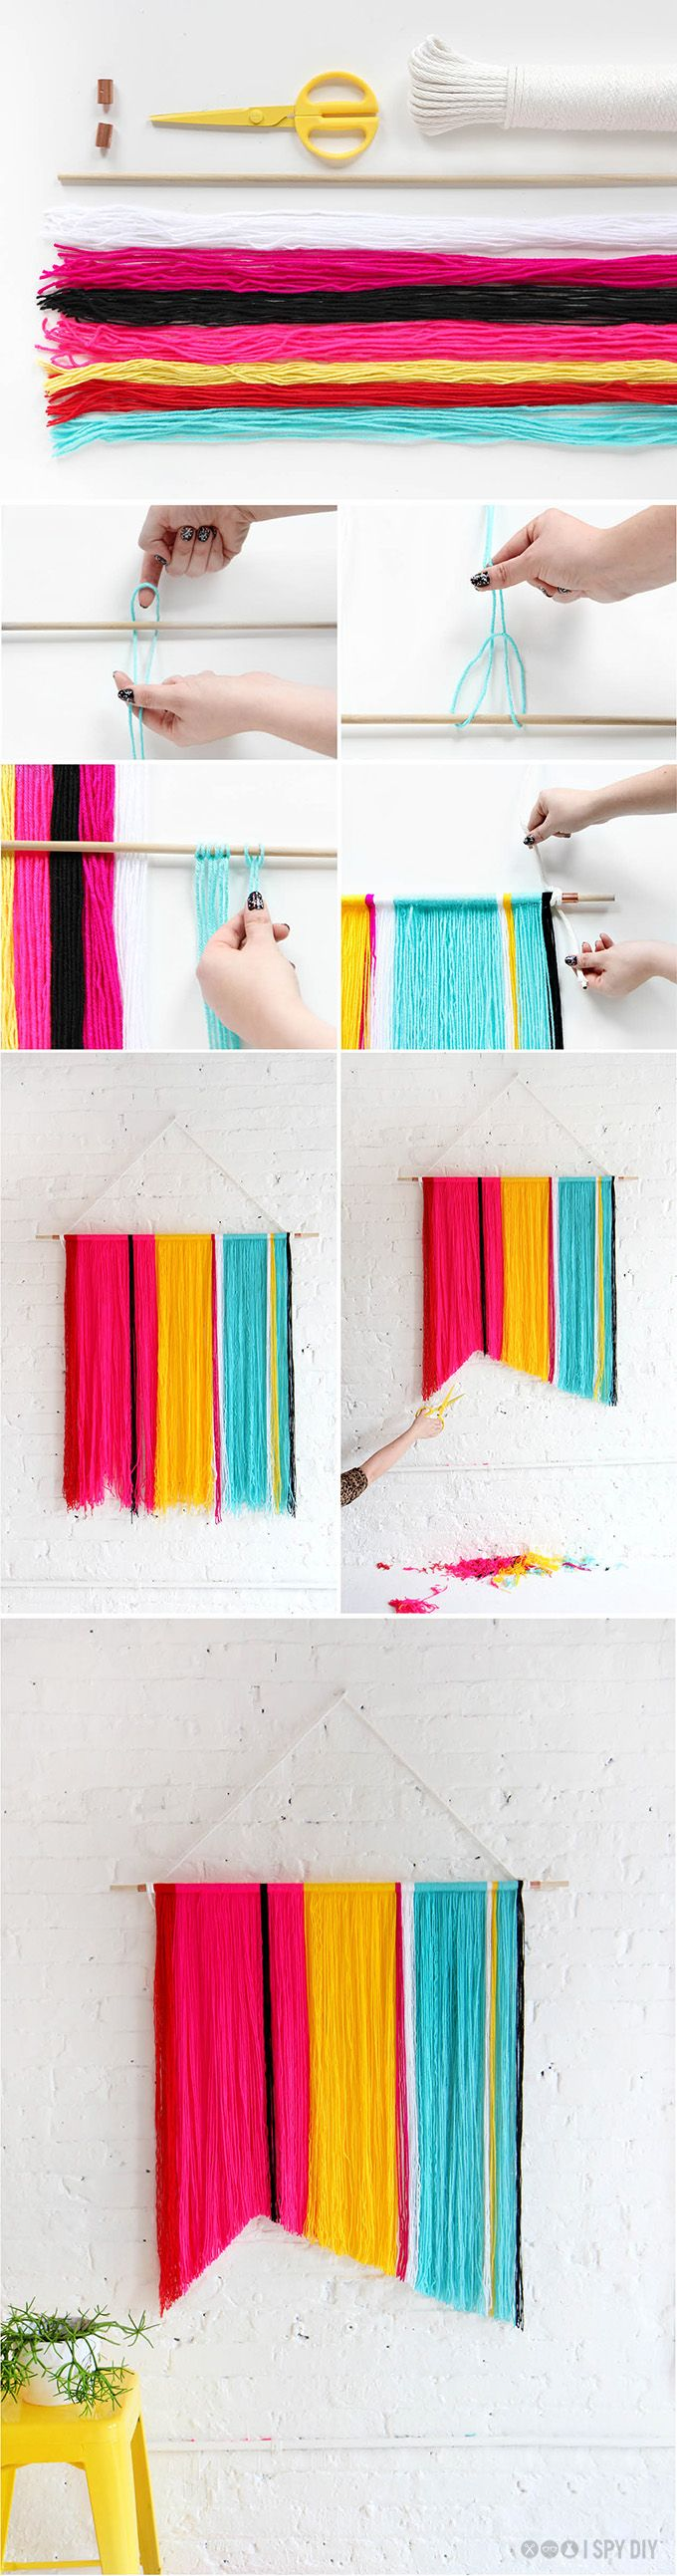 689 best DIY > Best of Pinterest images on Pinterest | Bricolage ...